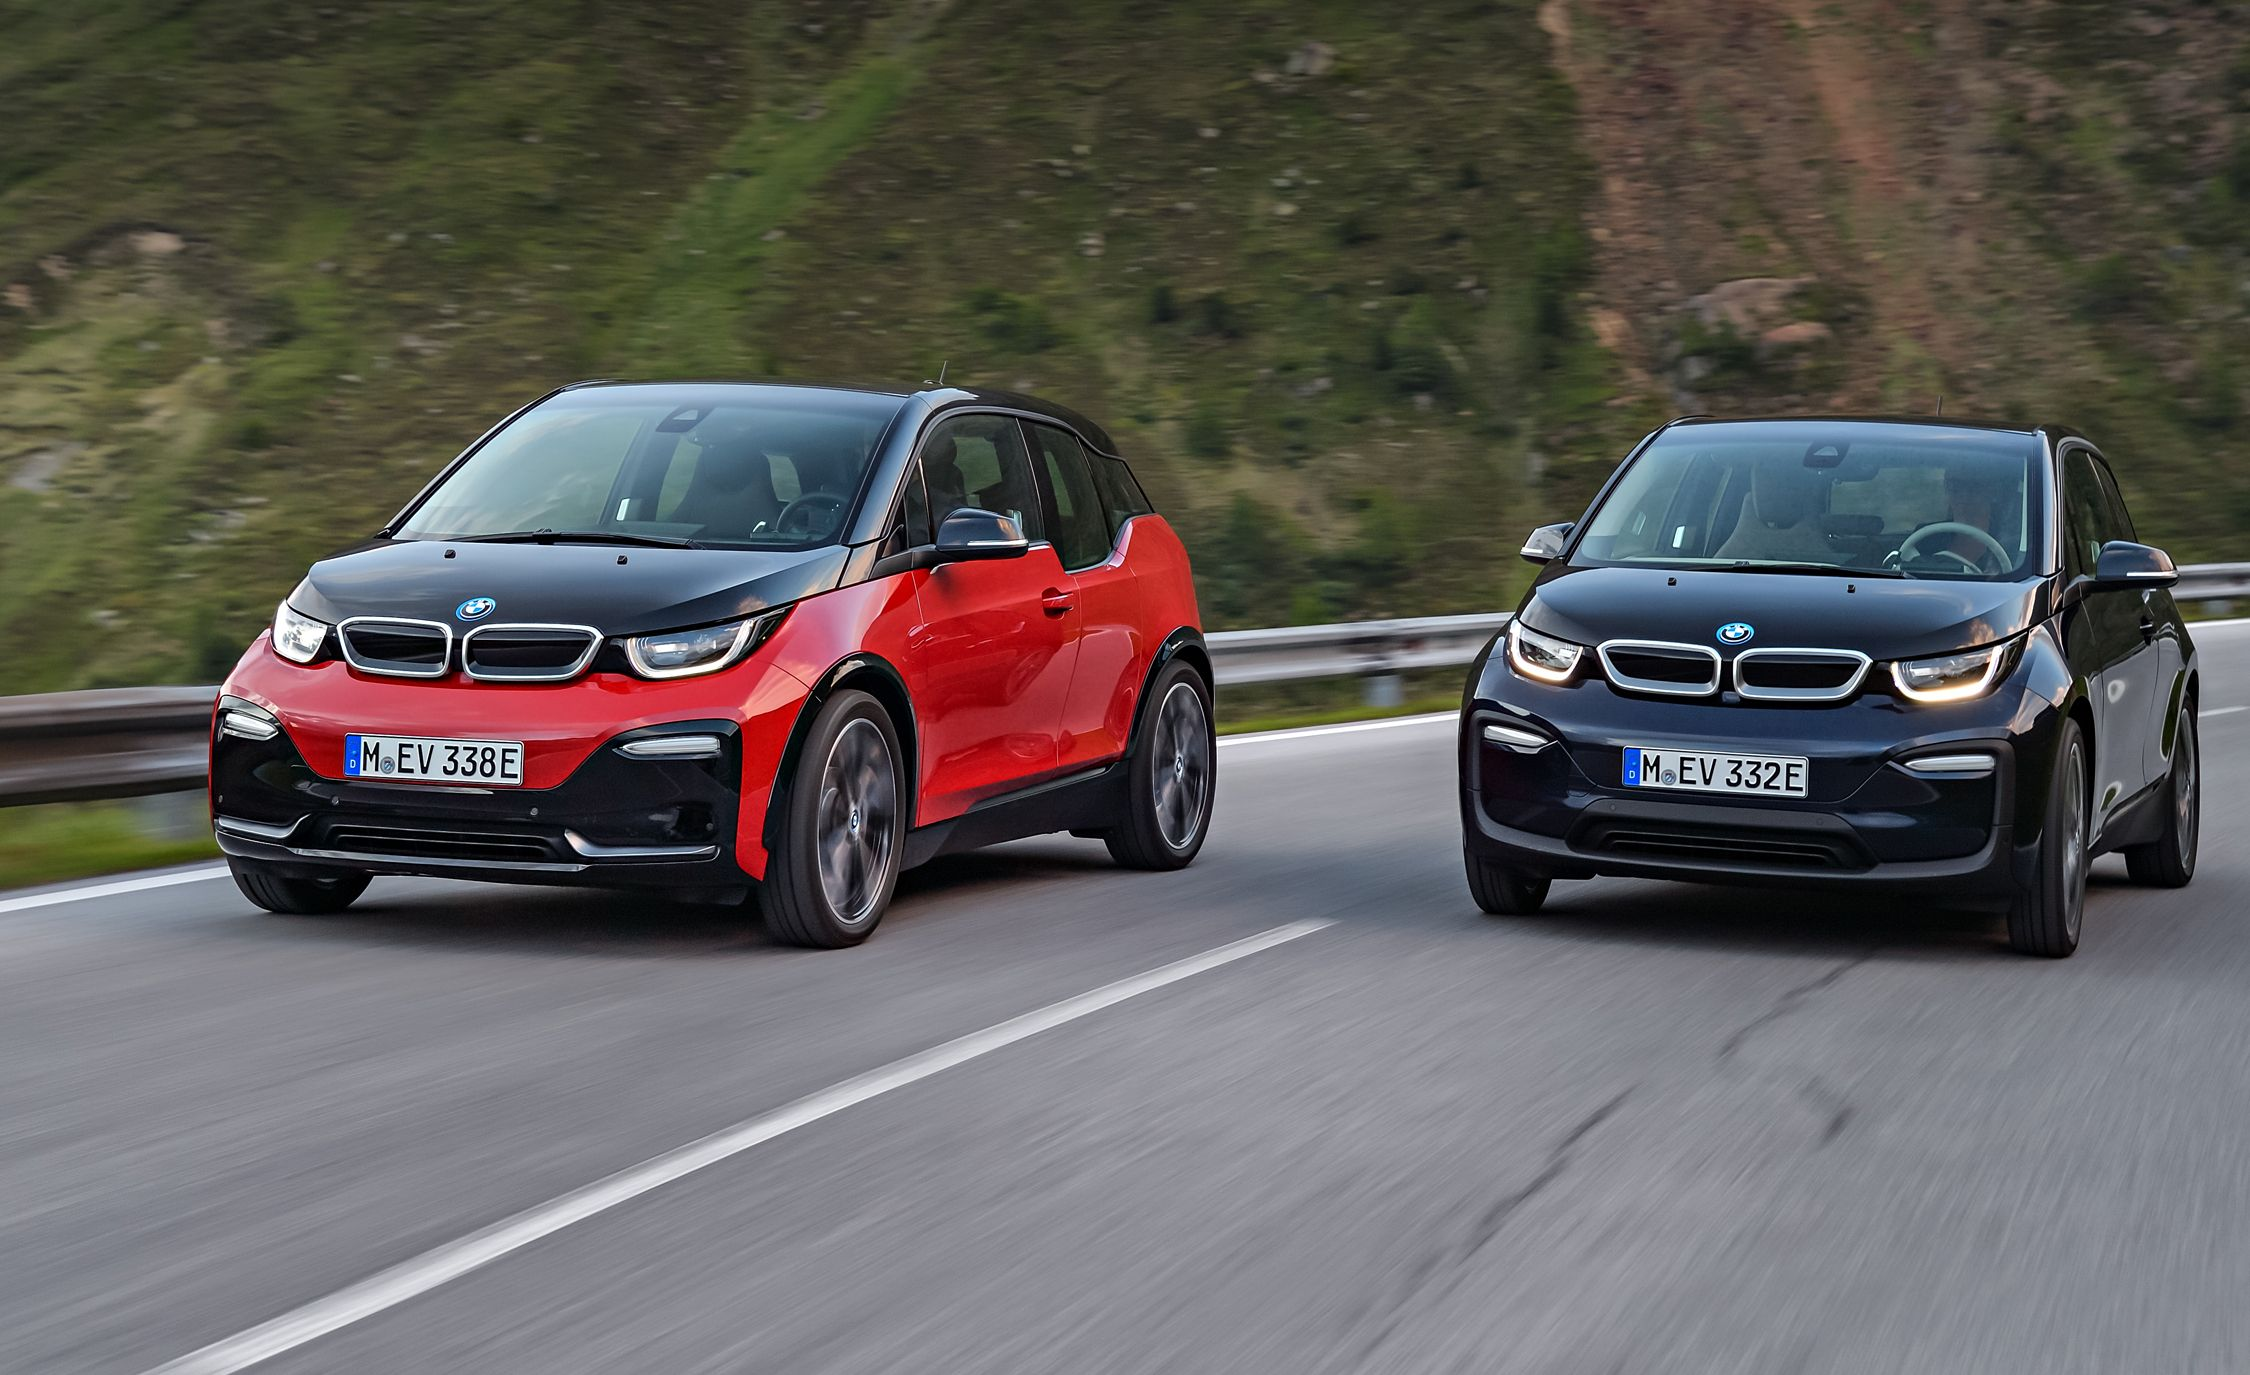 2018 BMW i3 and i3s: Updates and a New Sporty Variant